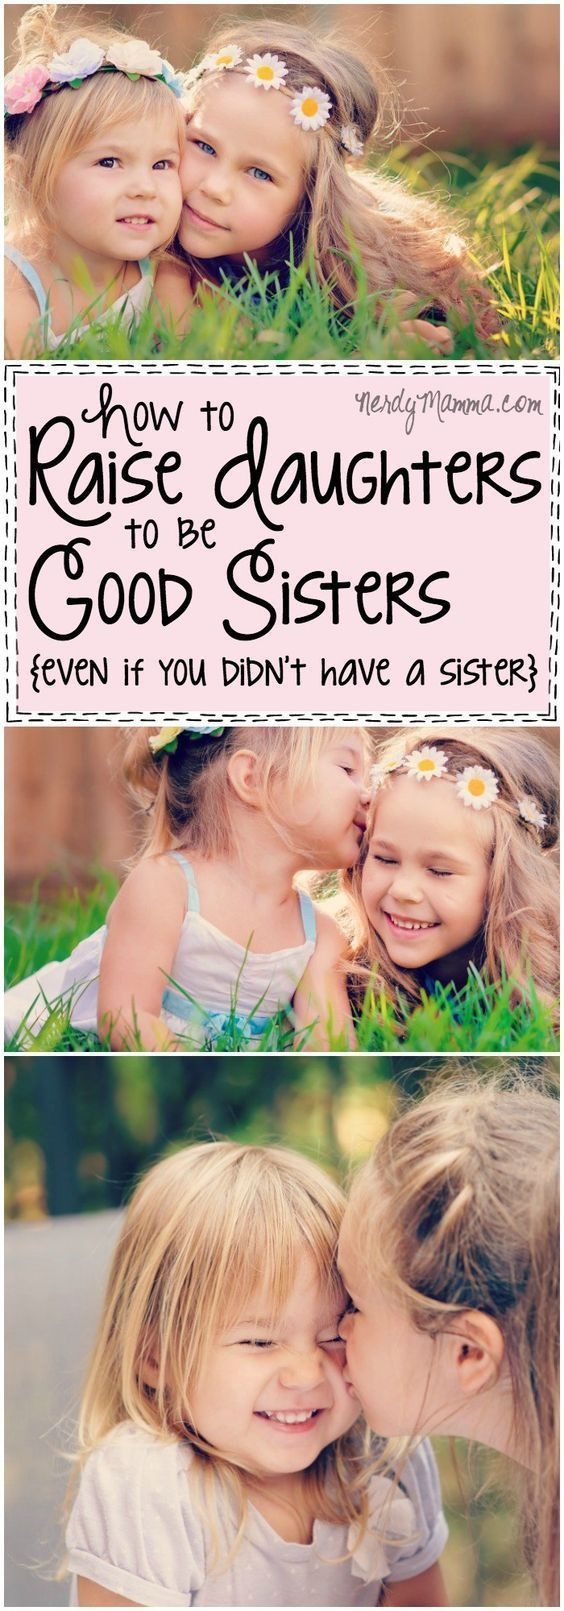 I love this parenting advice on how to raise daughters to be good sisters. I mean--I guess I've been over thinking it. #parentingadvicegirls